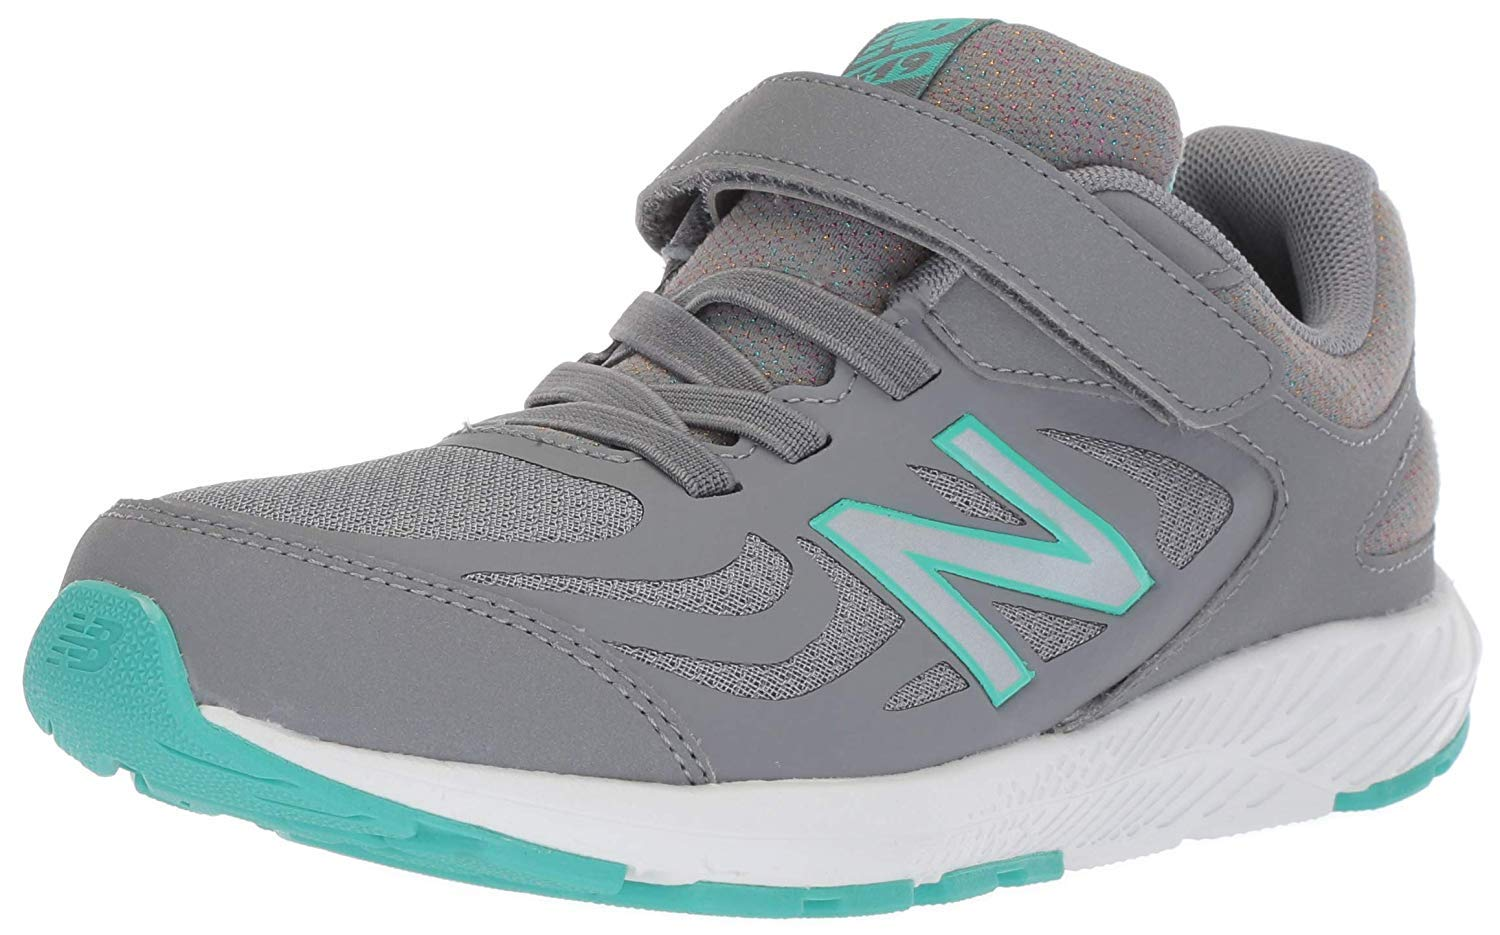 New Balance Girls' 519v1 Hook and Loop Running Shoe, Gunmetal/Aquarius, 2 M US Infant